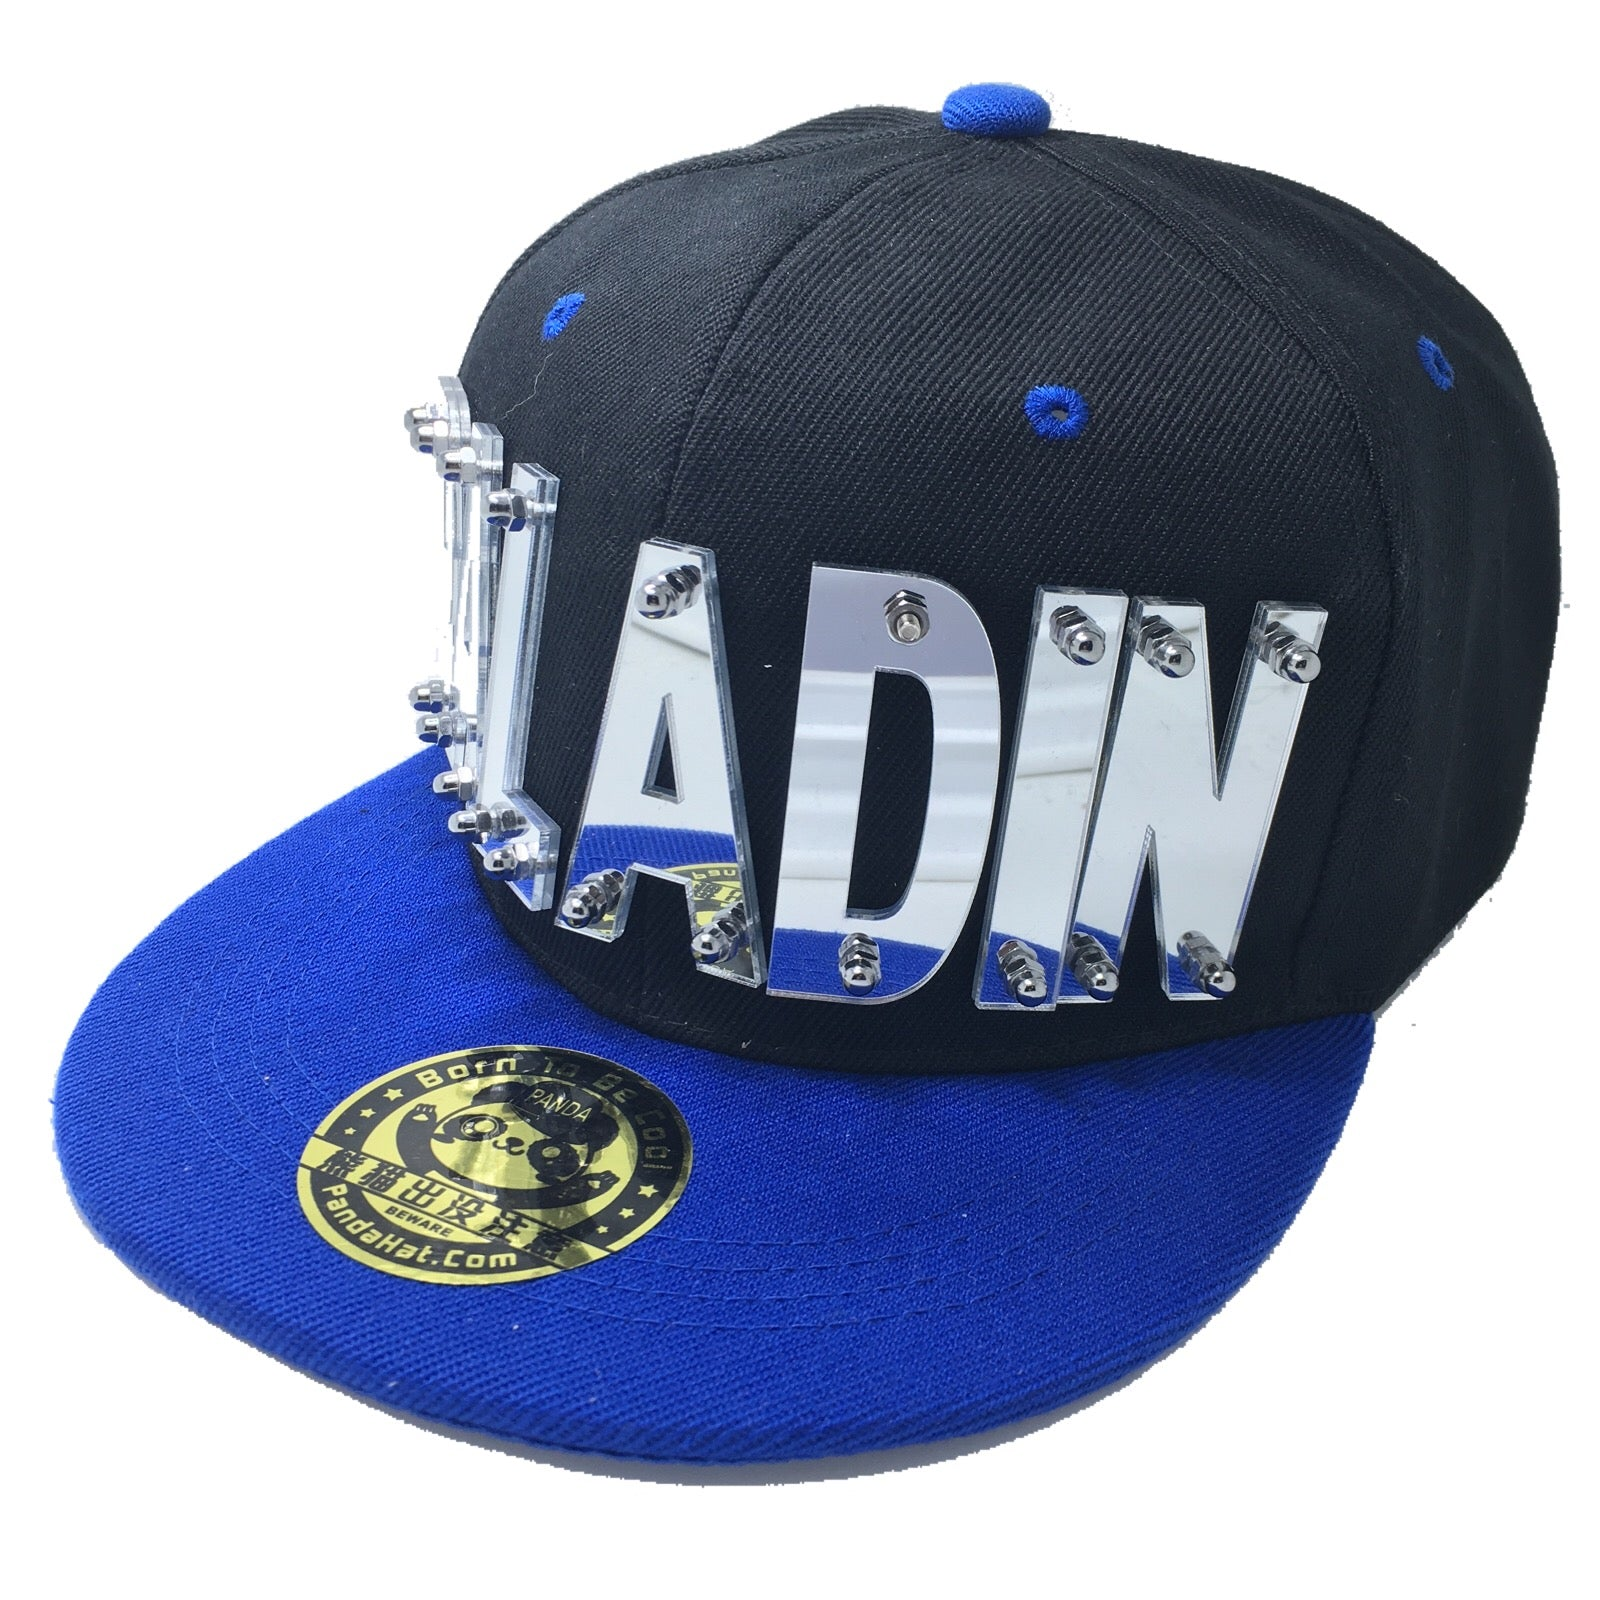 PALADIN VOLTRON HAT IN BLACK WITH BLUE BRIM - Pandahat 0064a195388